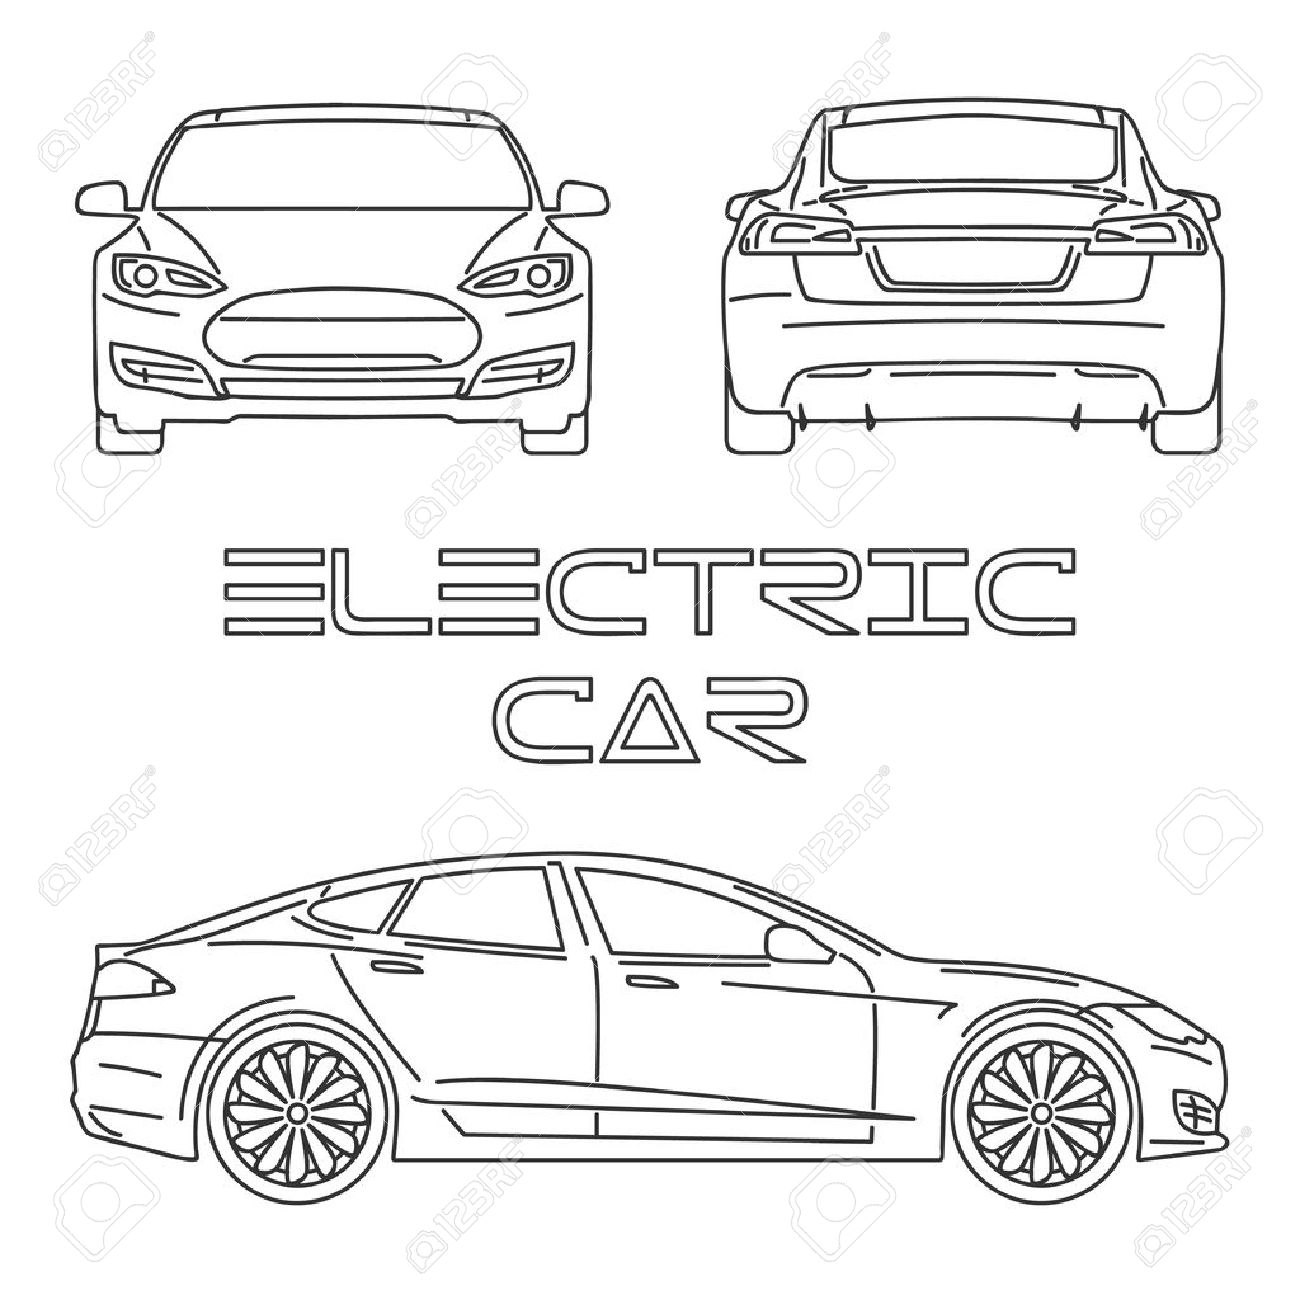 1300x1300 Silhouette Of Electric Car. Front View. Back View. Side View